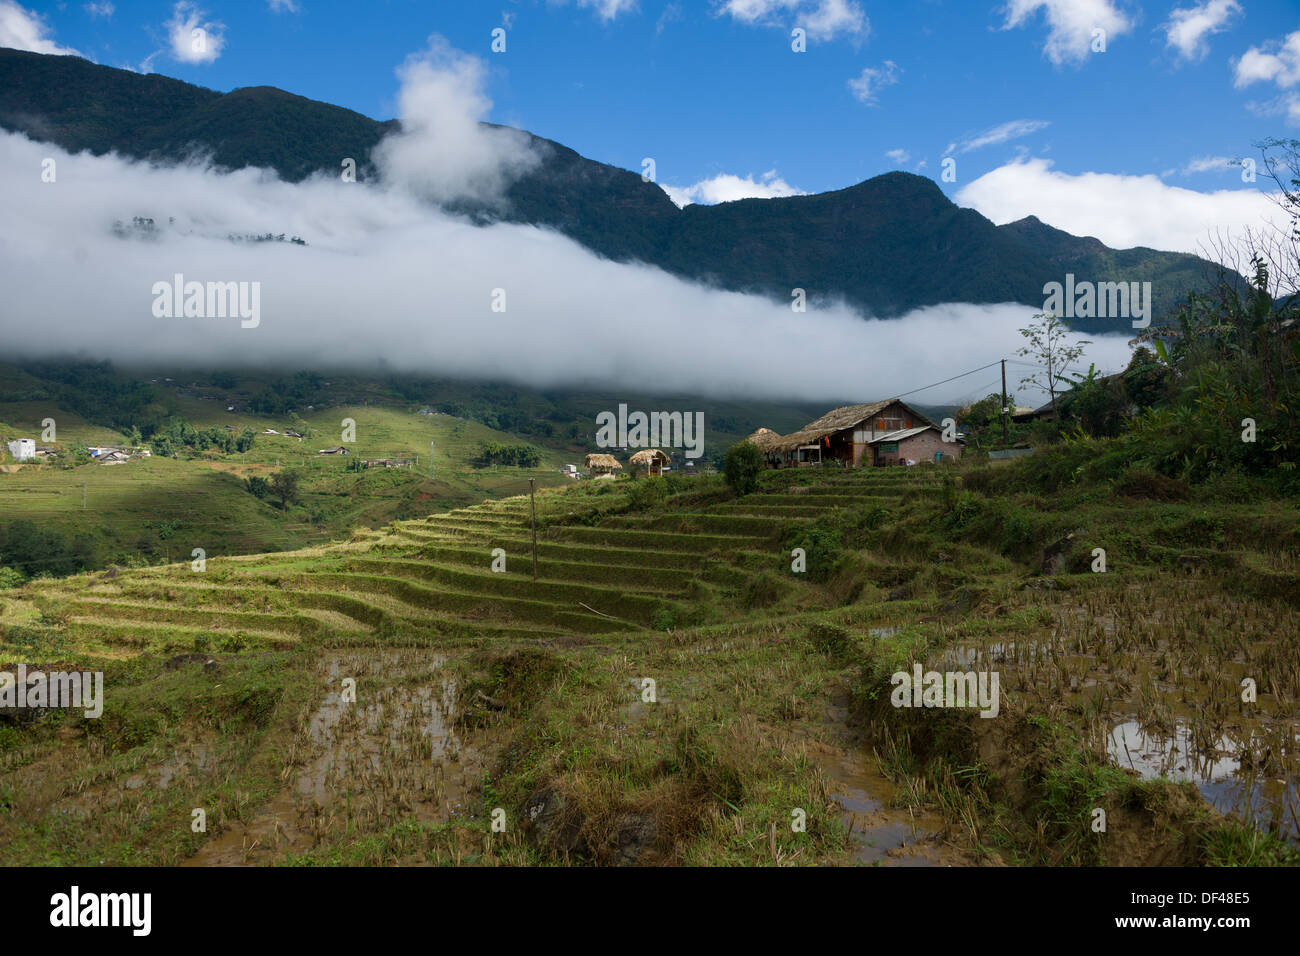 Low-lying cloud in a valley above rice terraces, Ta Van village, near SaPa, Vietnam - Stock Image